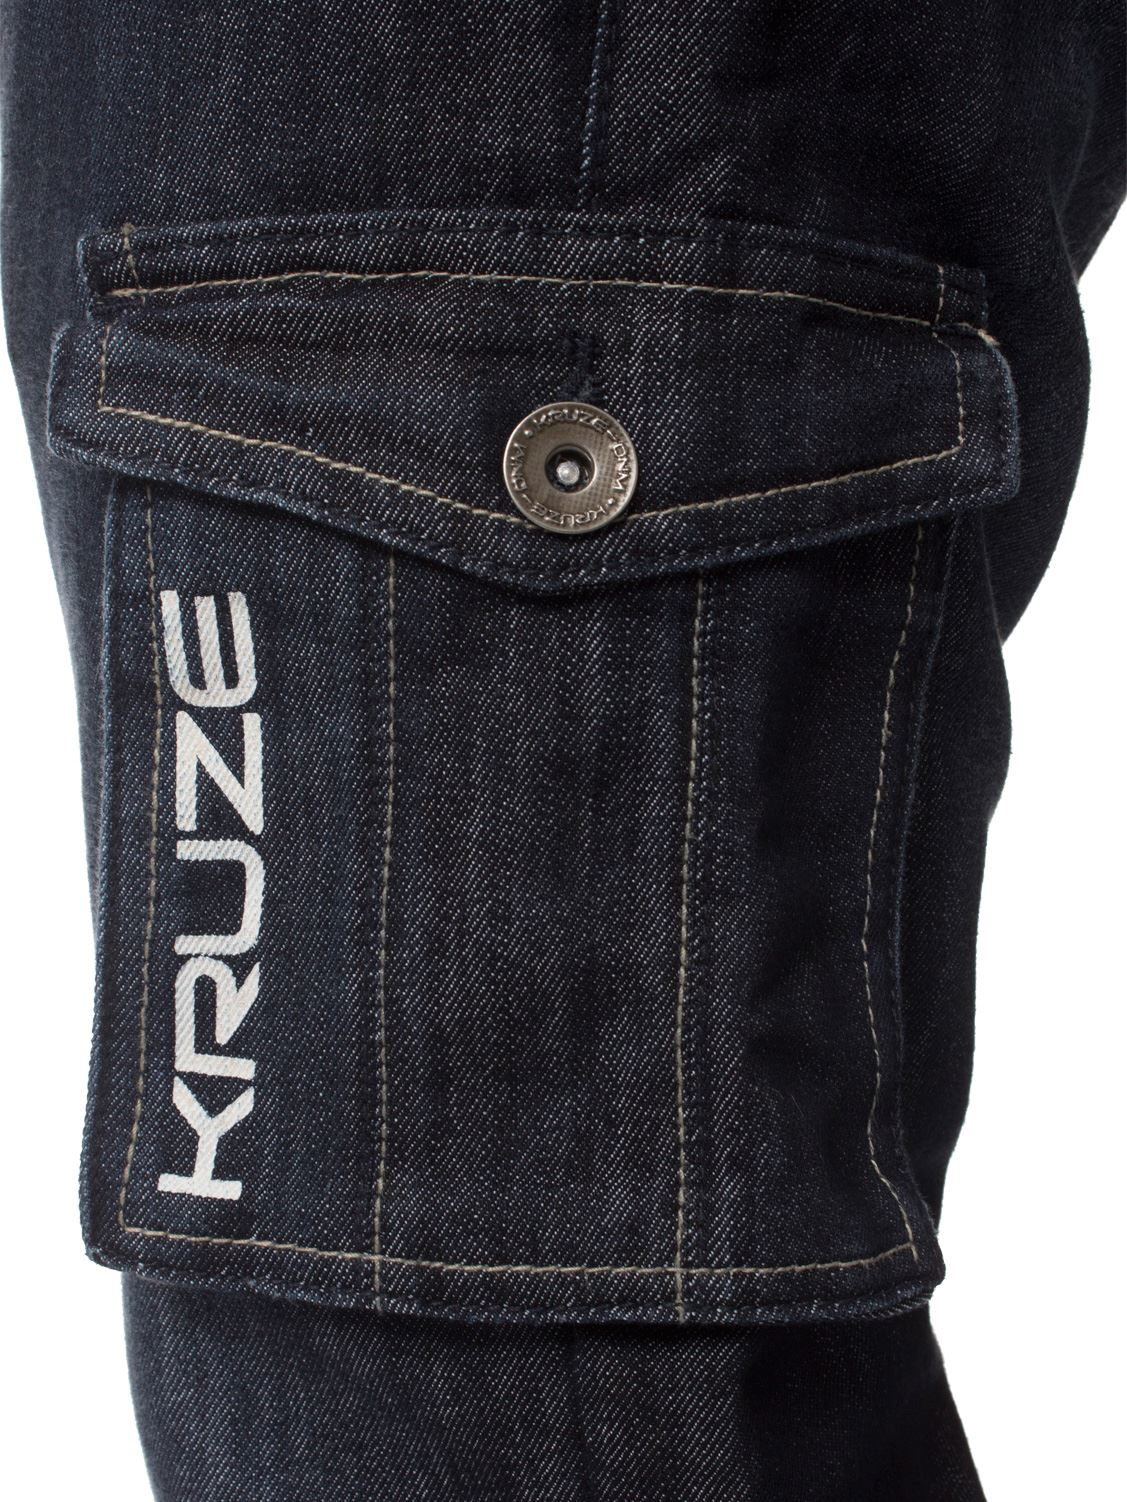 KRUZE-Mens-Combat-Jeans-Casual-Cargo-Work-Pants-Denim-Trousers-All-Waist-Sizes thumbnail 24